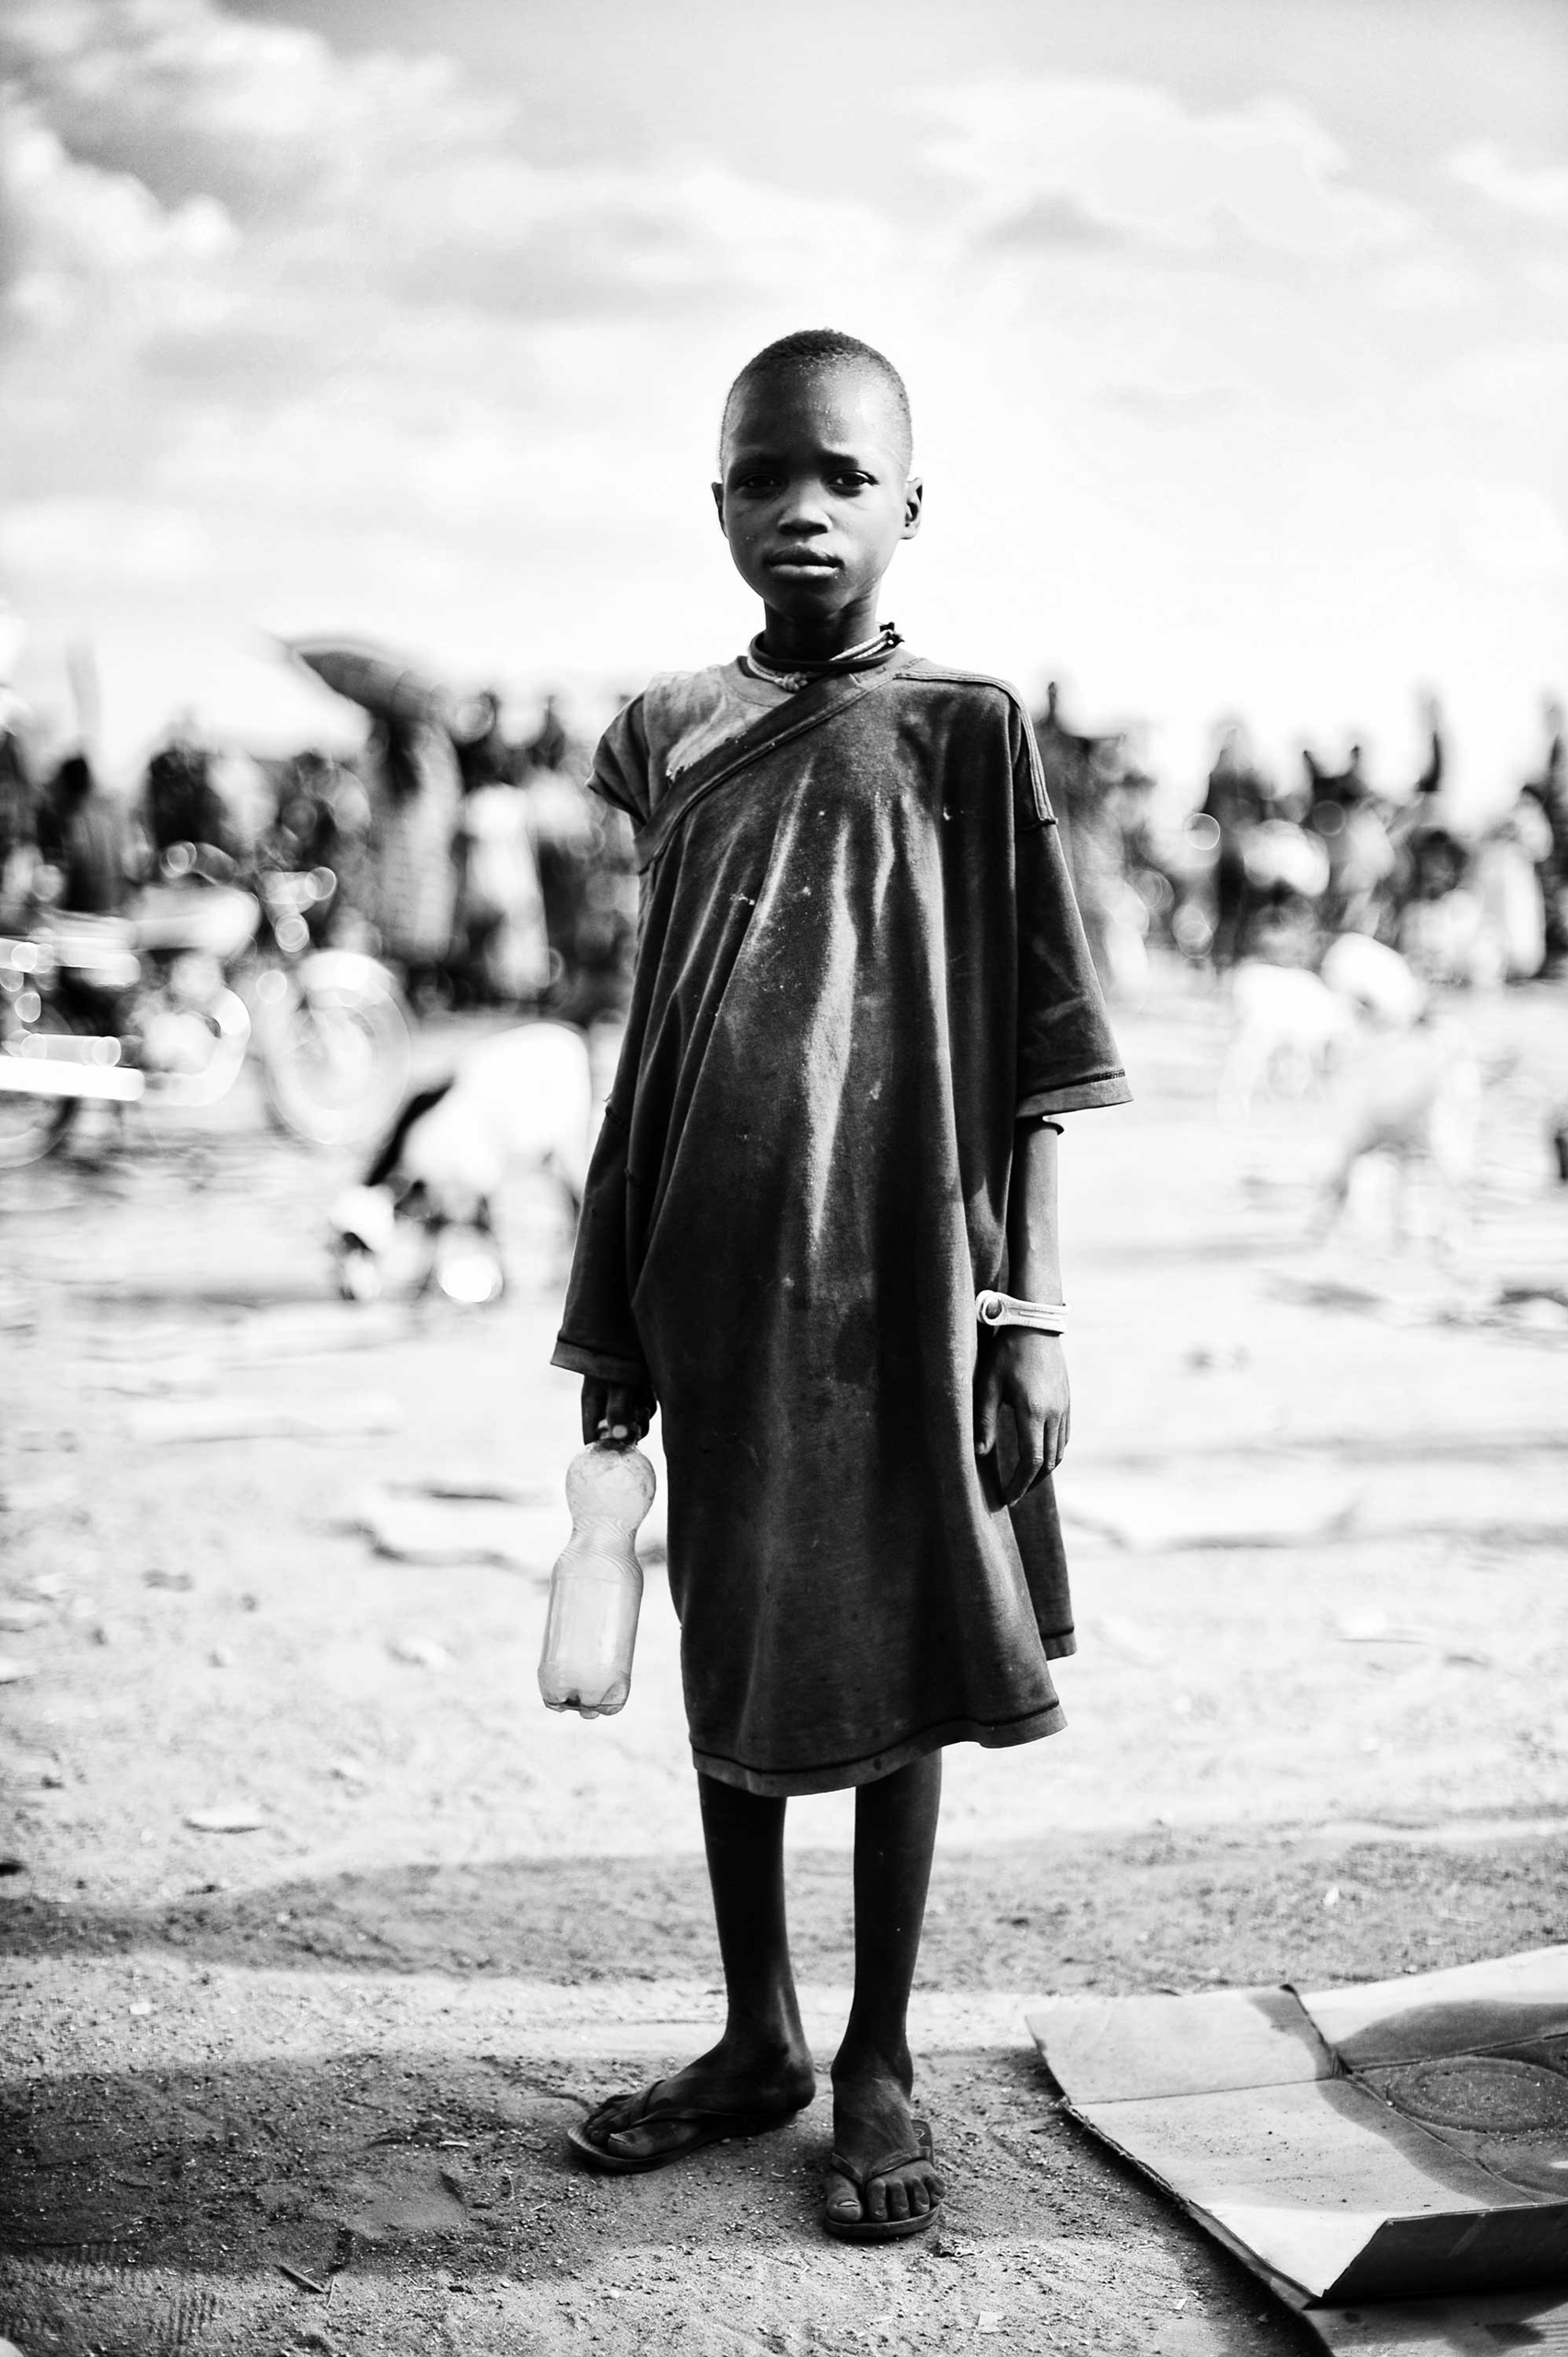 Mingkamann refugee camp, Lakes state, South Sudan: Duku, about 8 years old, reached the Mingkaman refugee camp after two months of walking. He has remained completely alone, but was greeted by another family of refugees. He has no memory of what happened to his family and does not want to talk about it.